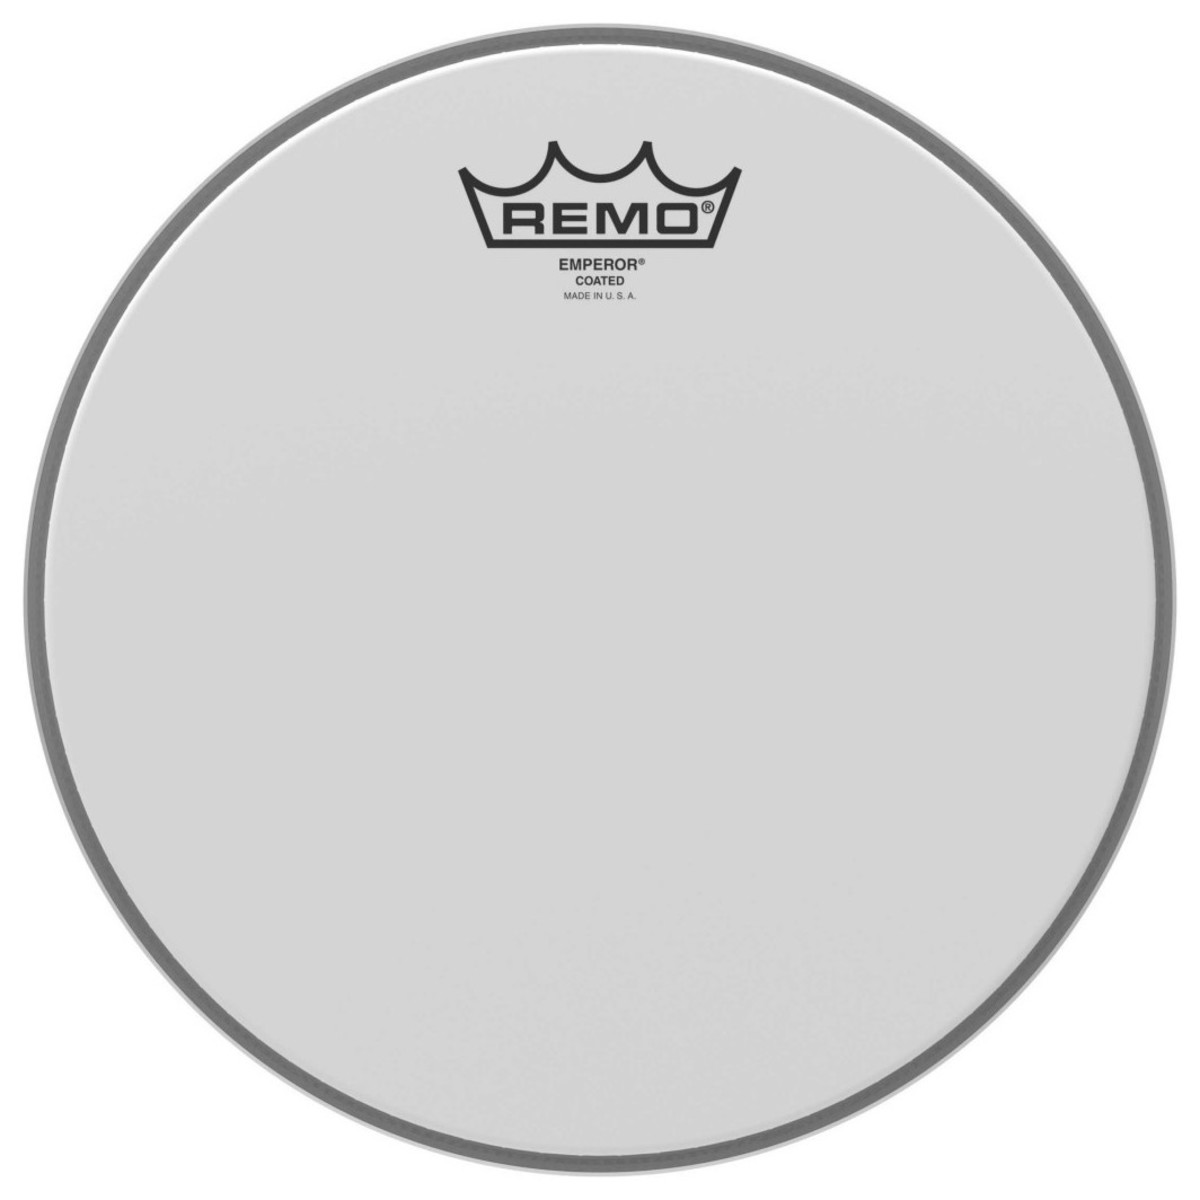 Remo Emperor Coated 12 Drum Head